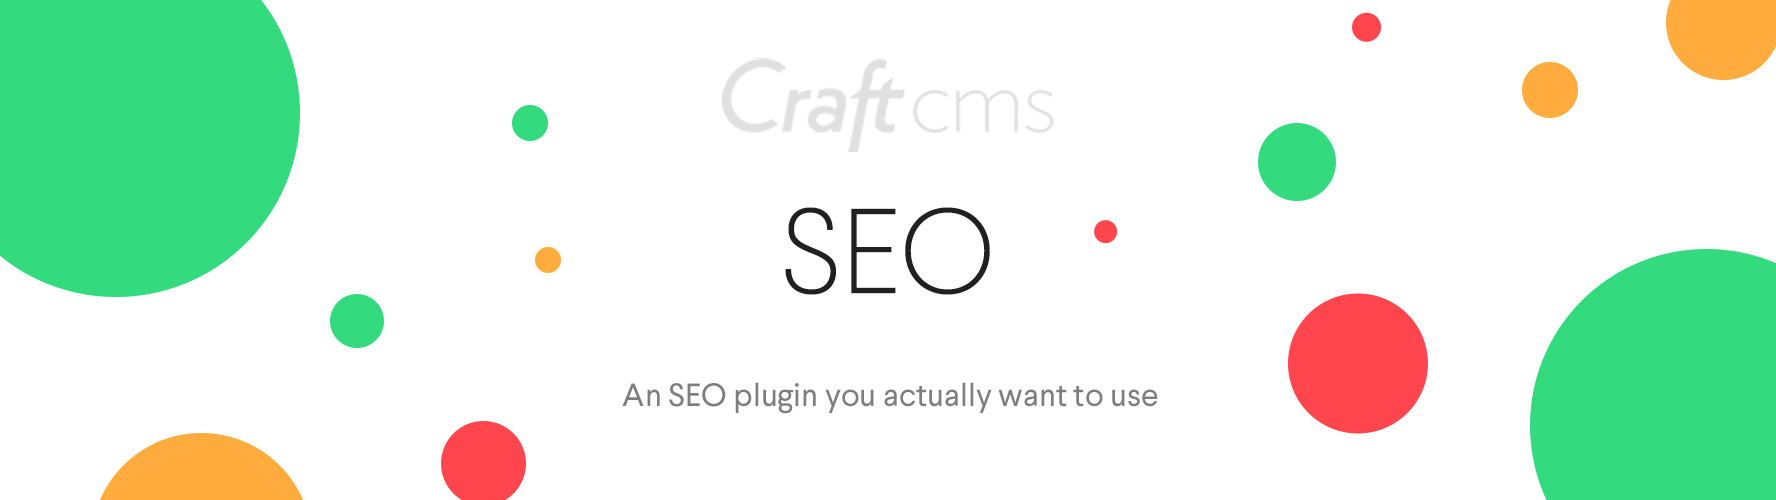 SEO for Craft CMS